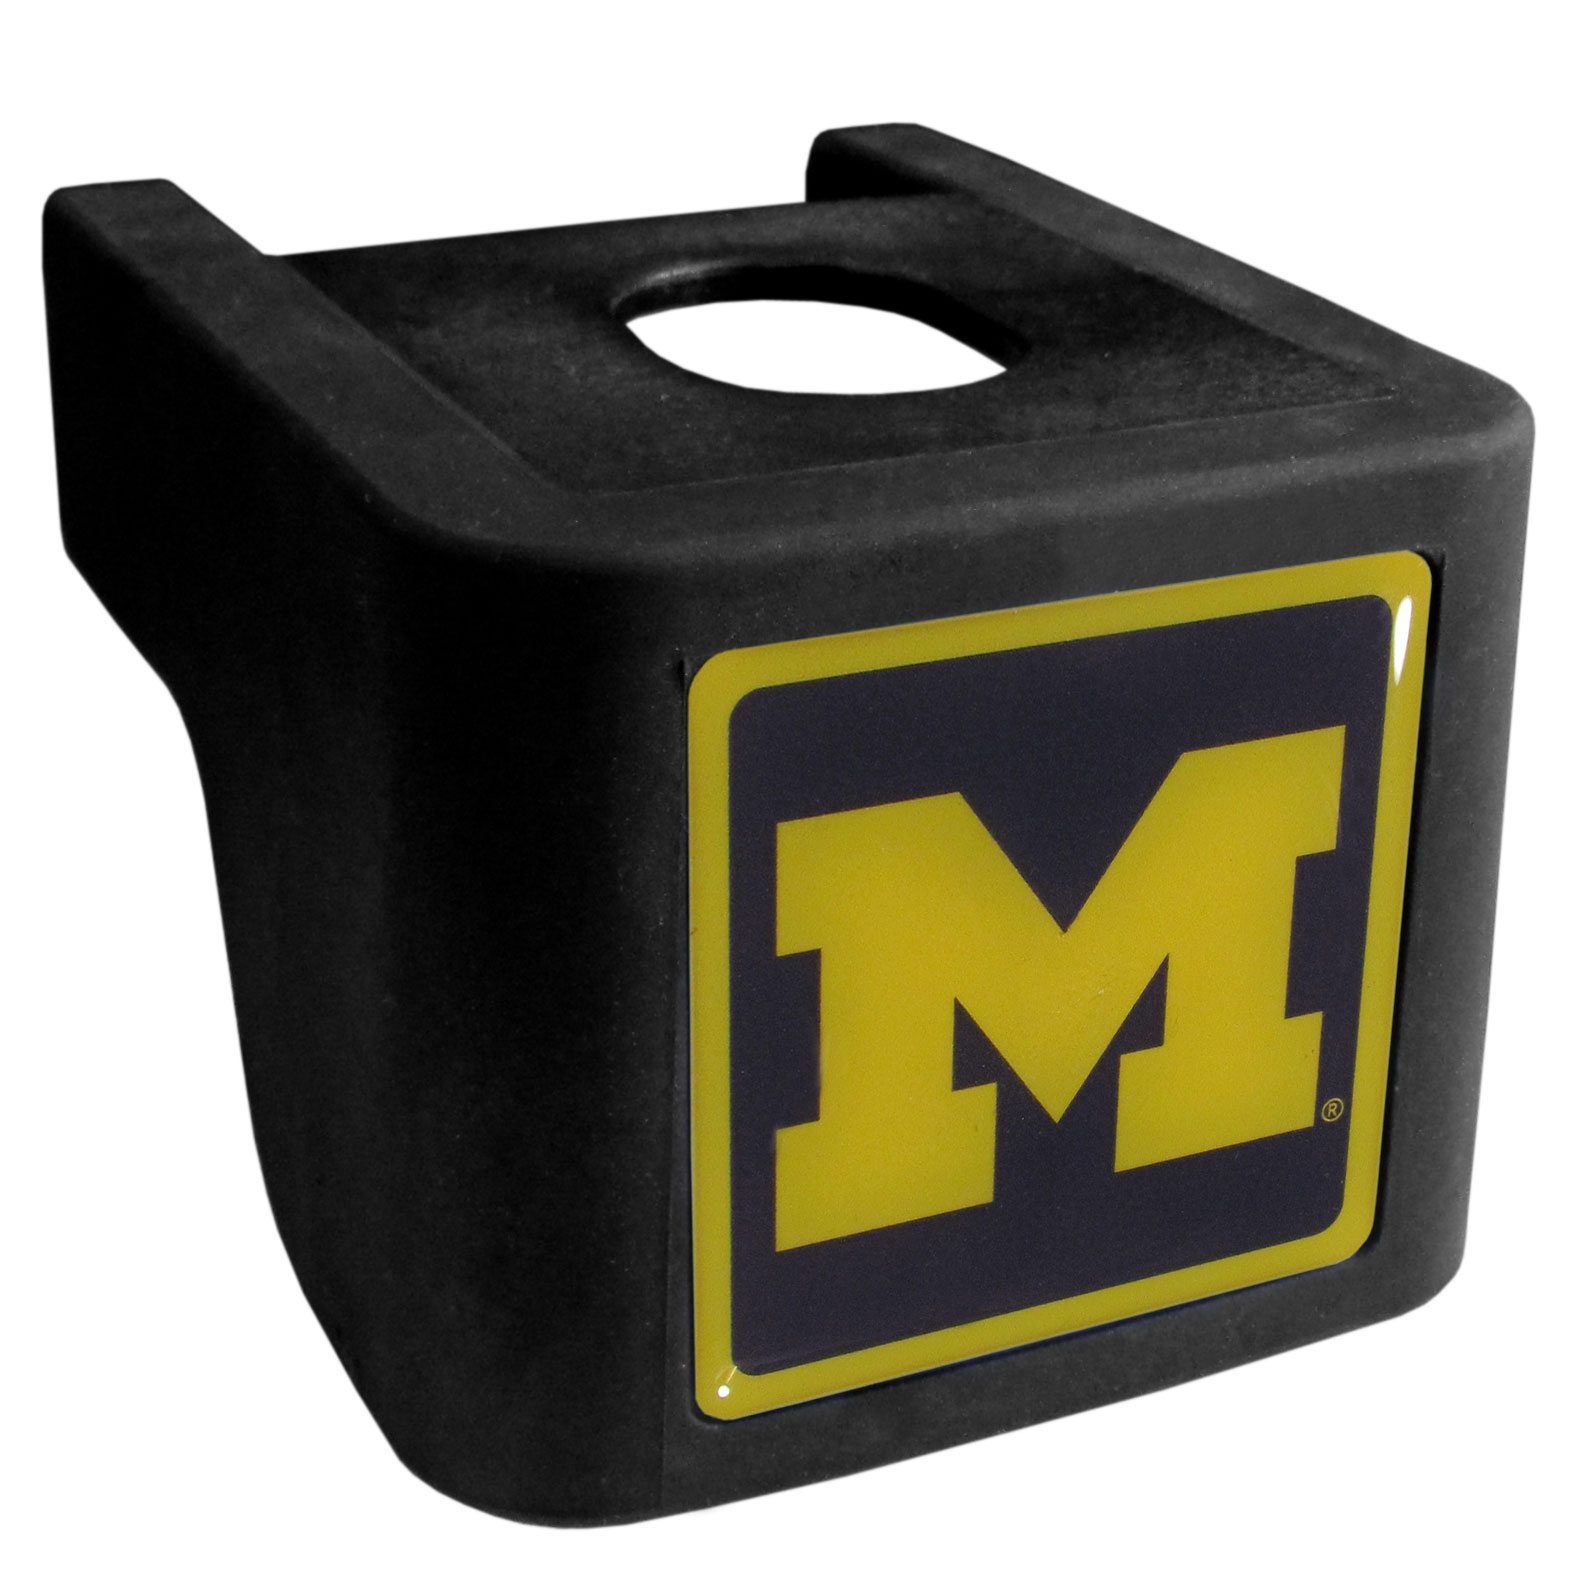 Michigan Wolverines Shin Shield Hitch Cover - This unique hitch cover features a large Michigan Wolverines logo. If you have ever hooked up a trailer or boat your have probably smashed your shins on the ball hitch a few times. This revolutionary shin shield hitch cover provides your much abused shins with the protection they deserve! The tough rubber hitch is rated to work with Class V hitch receivers hauling up to 17,000 gross trailer weight and 1,700 tongue weight allowing you to leave it on while hauling.